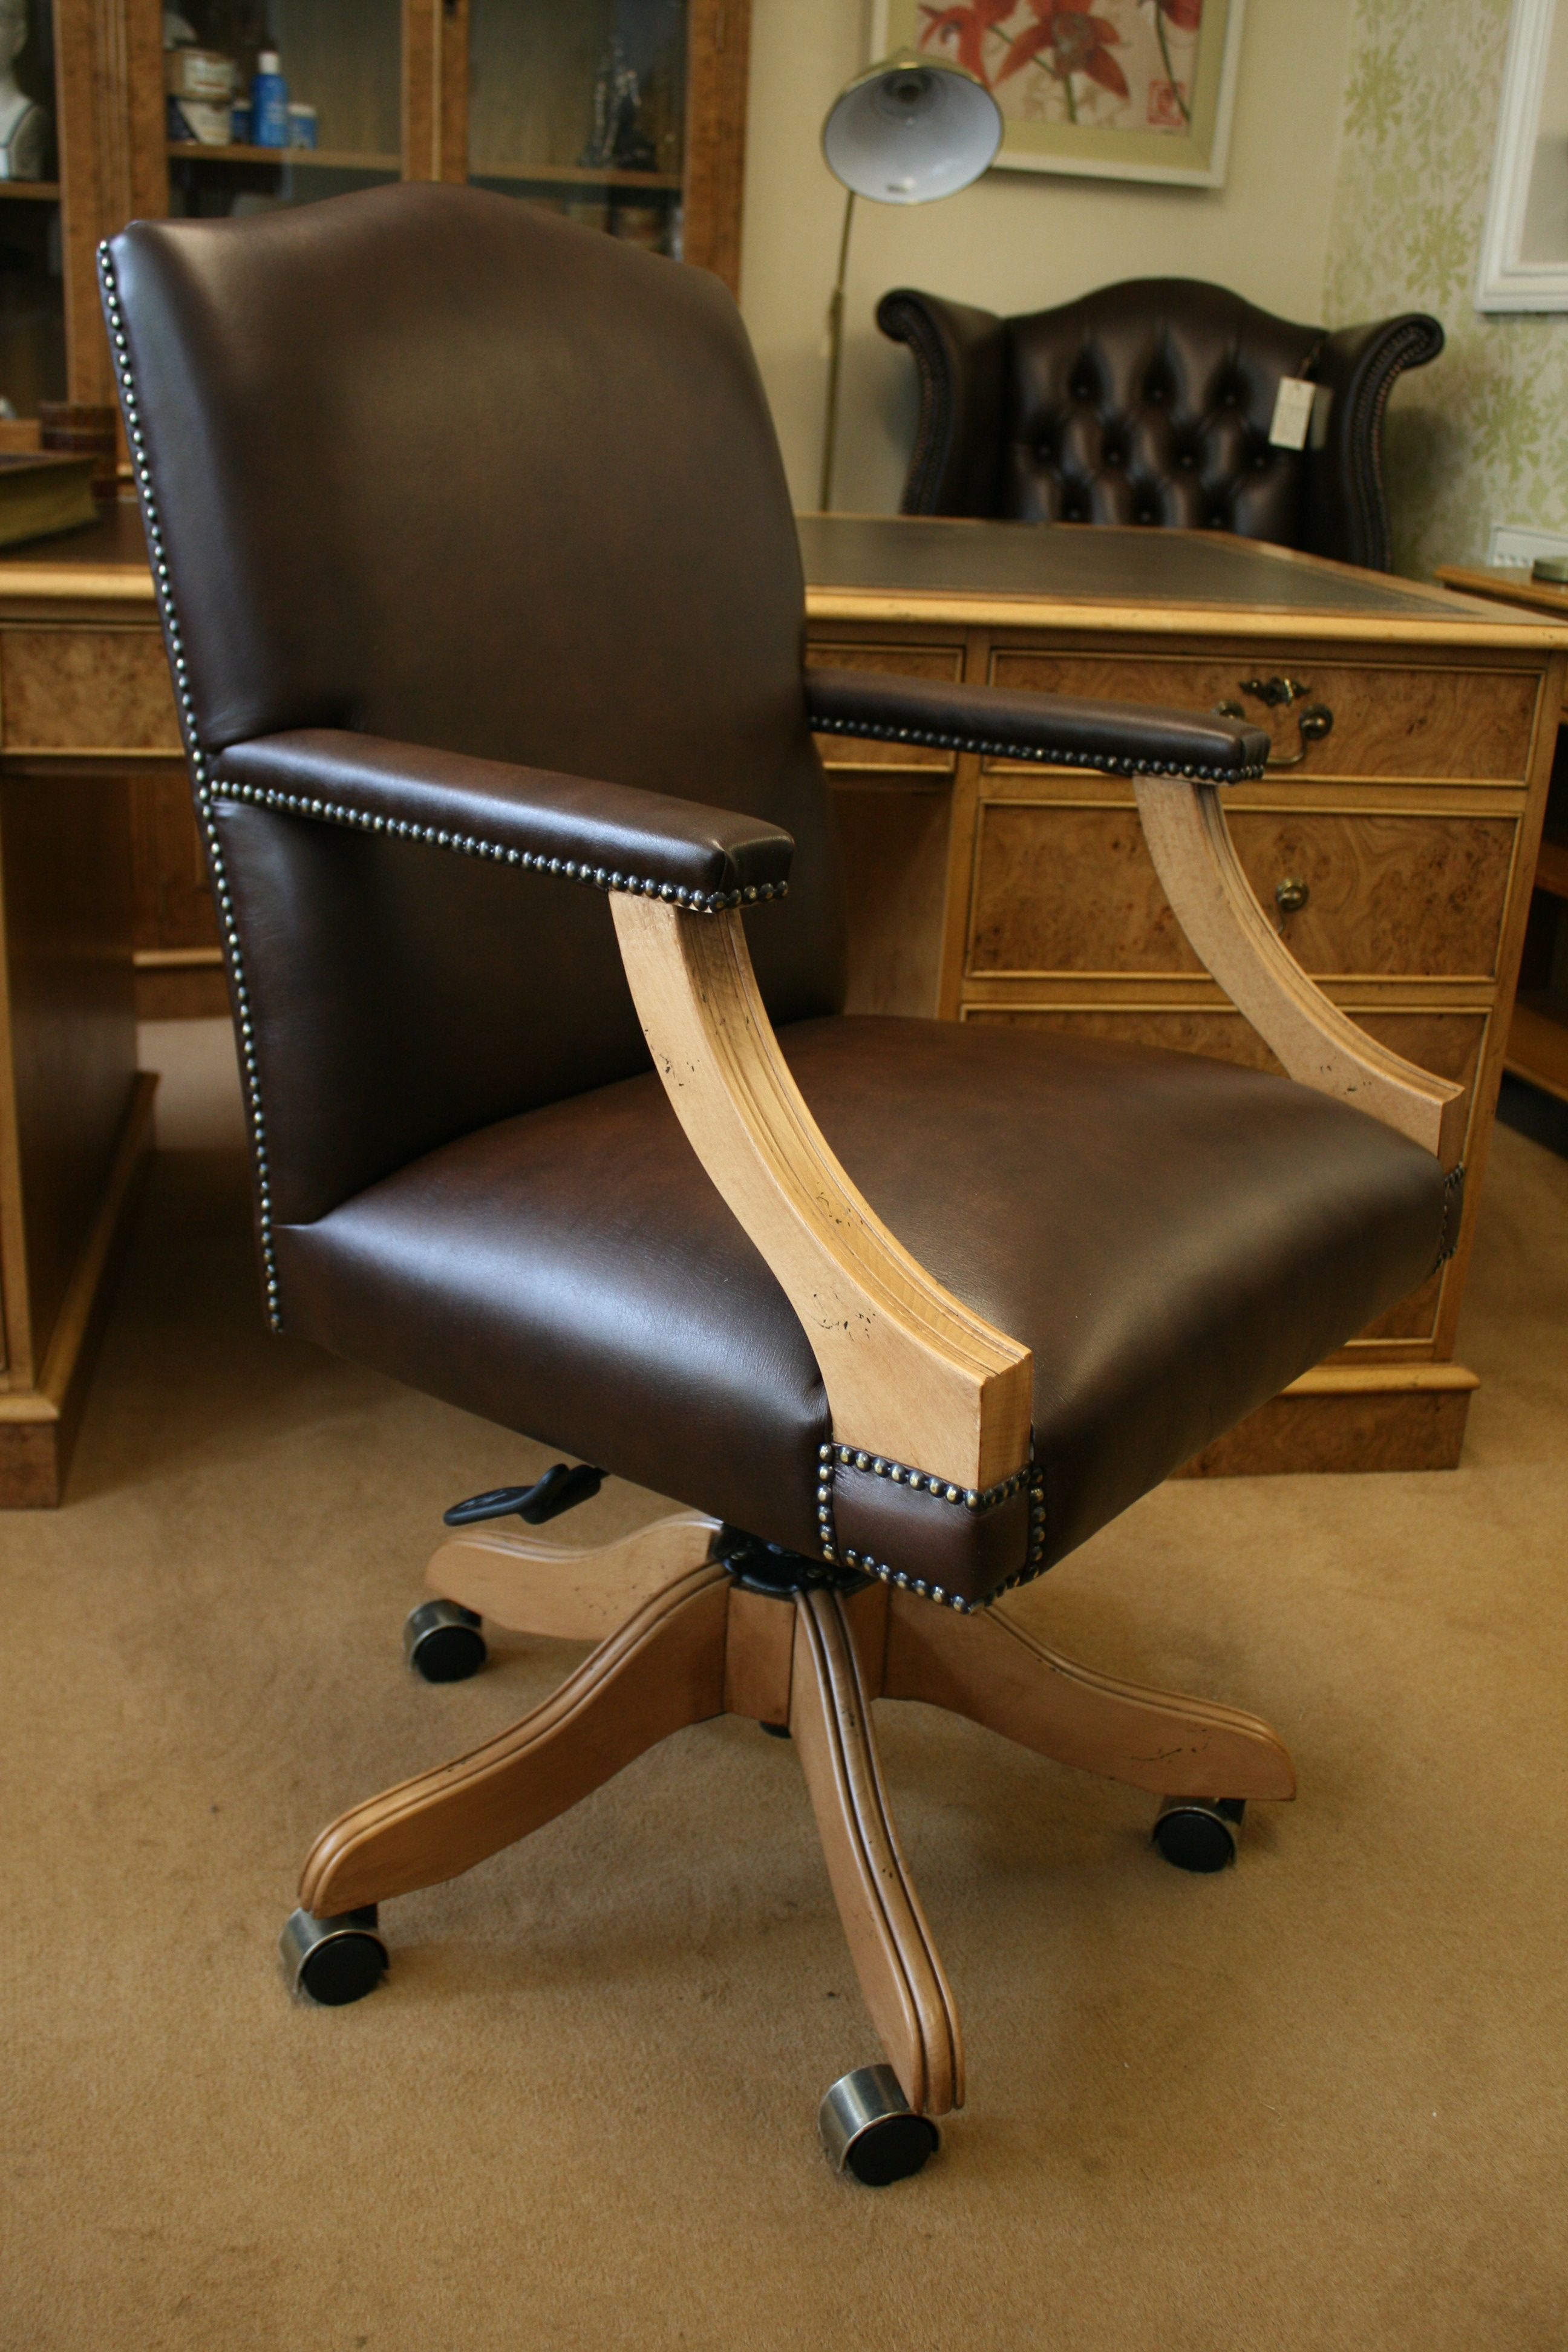 A Gainsborough Swivel Desk Chair Plain Brown Leather Upholstery Www Thedeskcentre Co